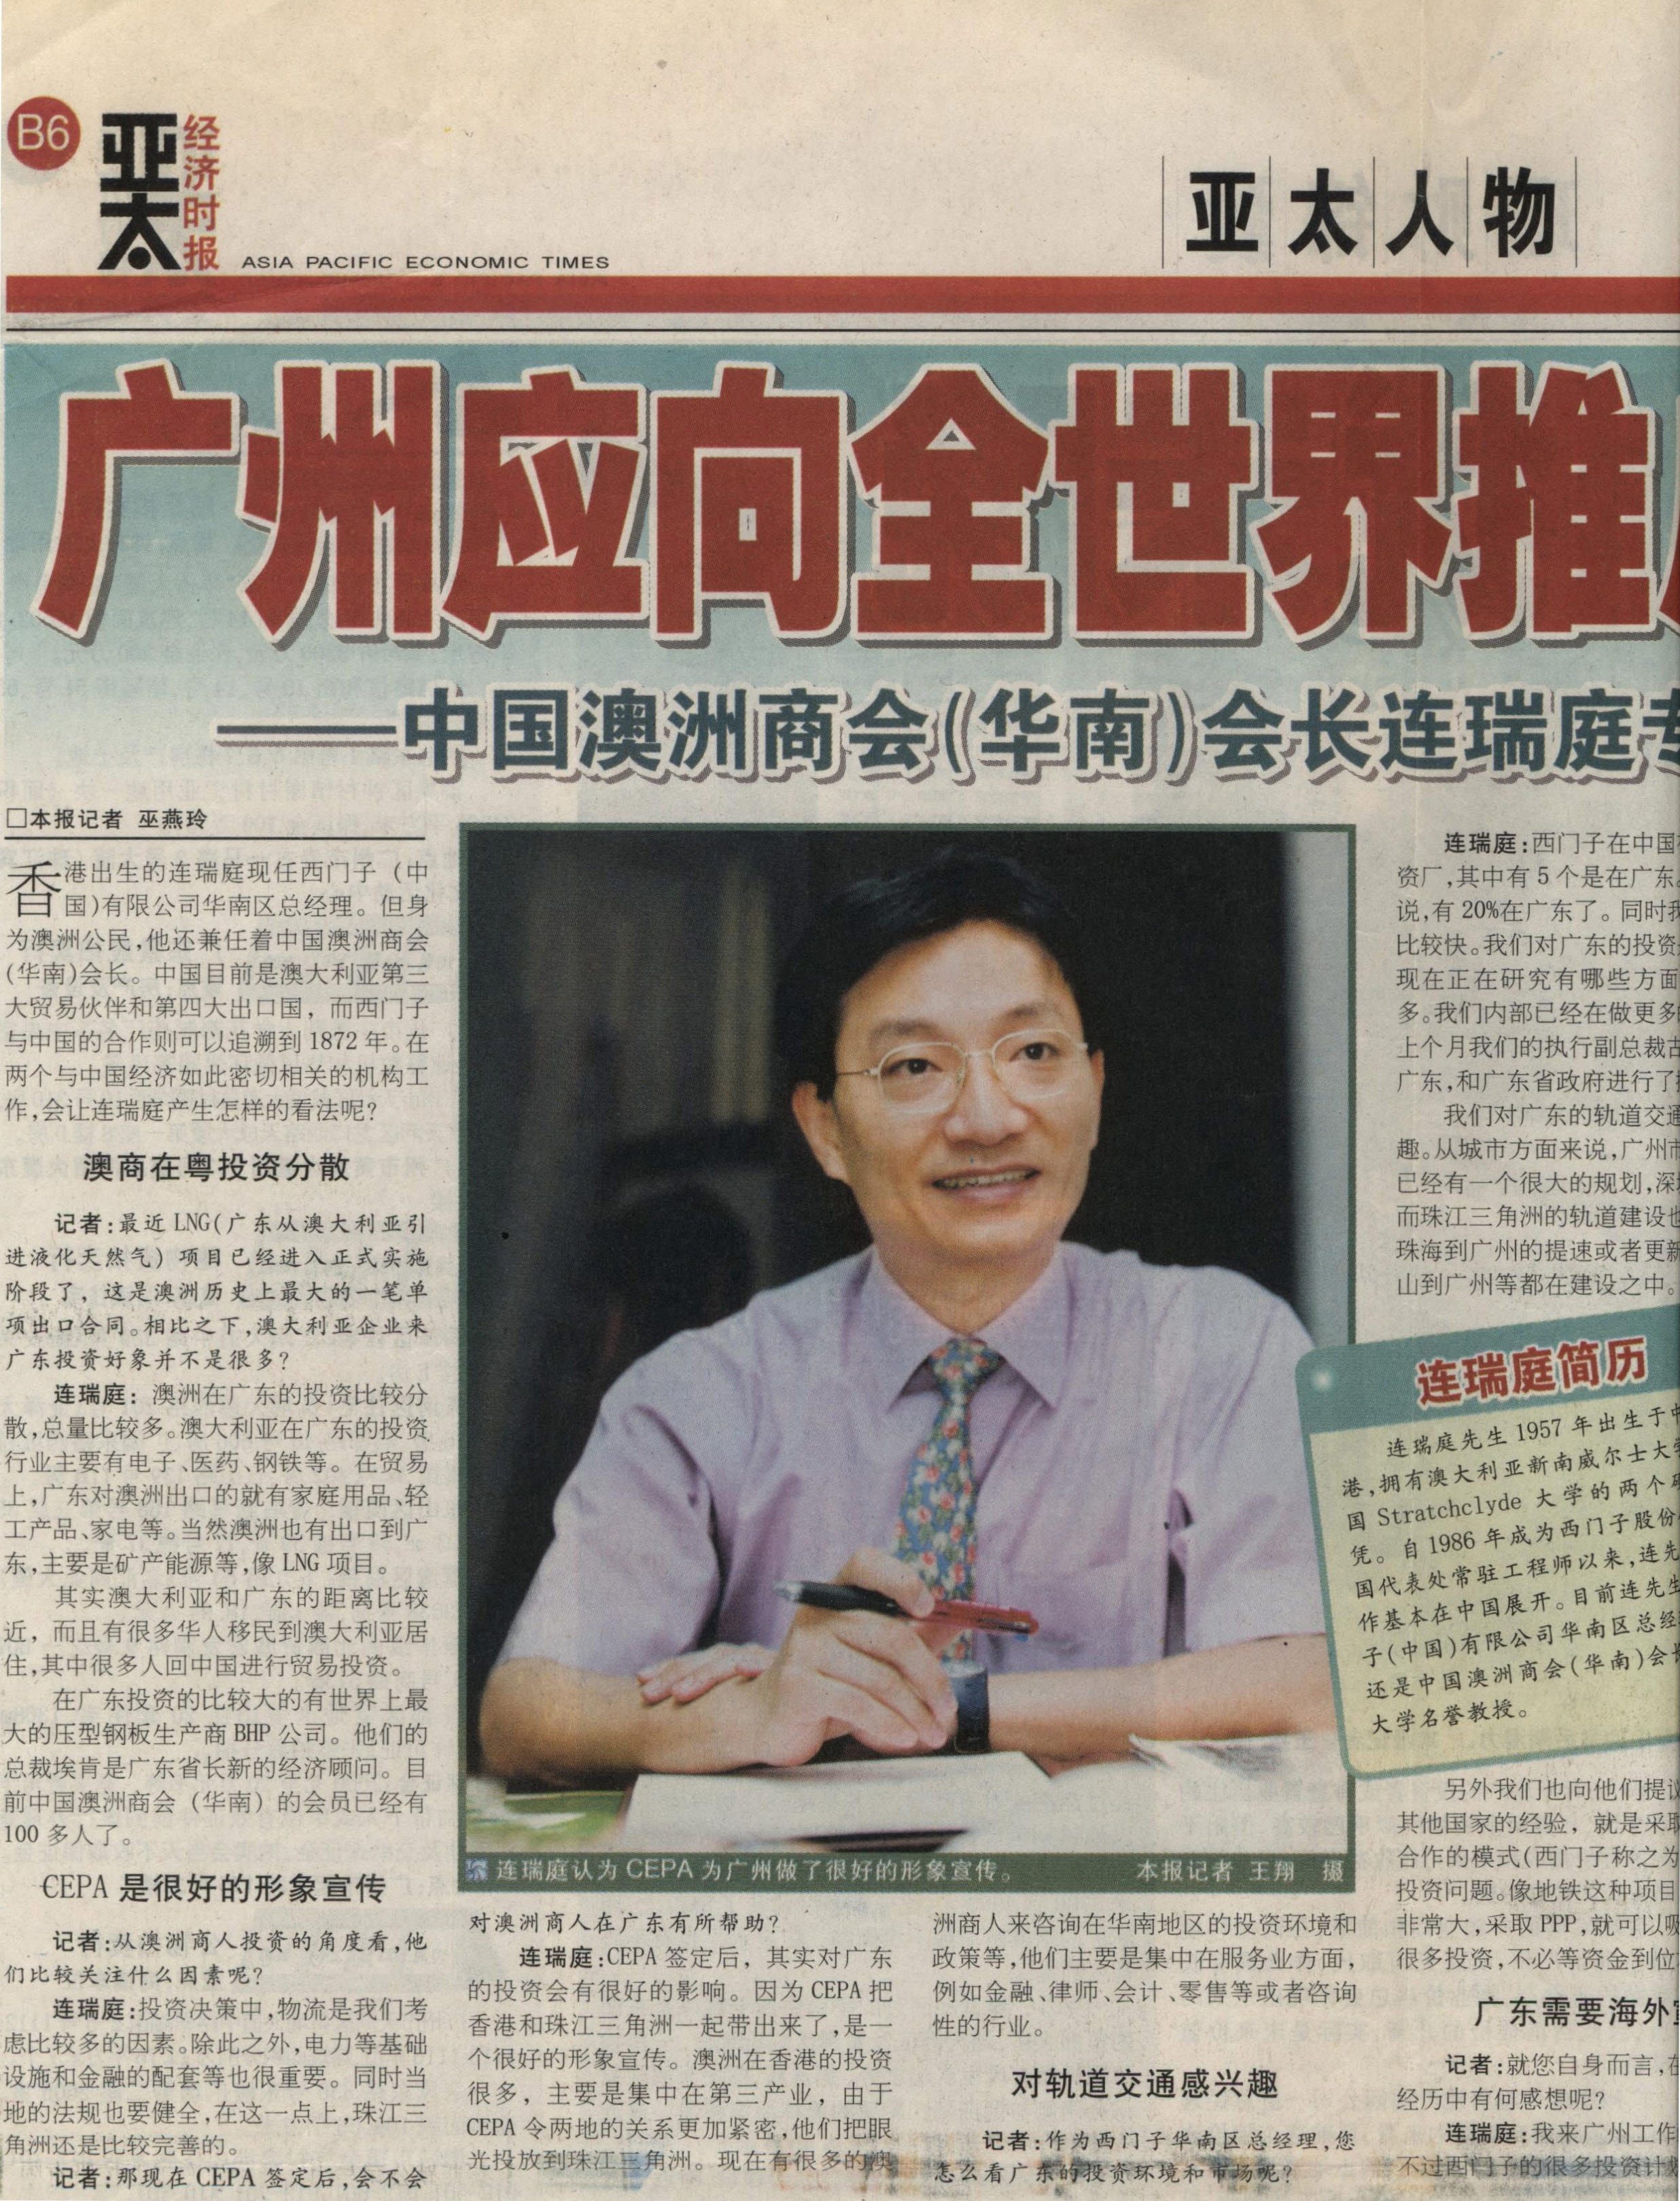 Richard Lin Featured in Asia Pacific Economic Times